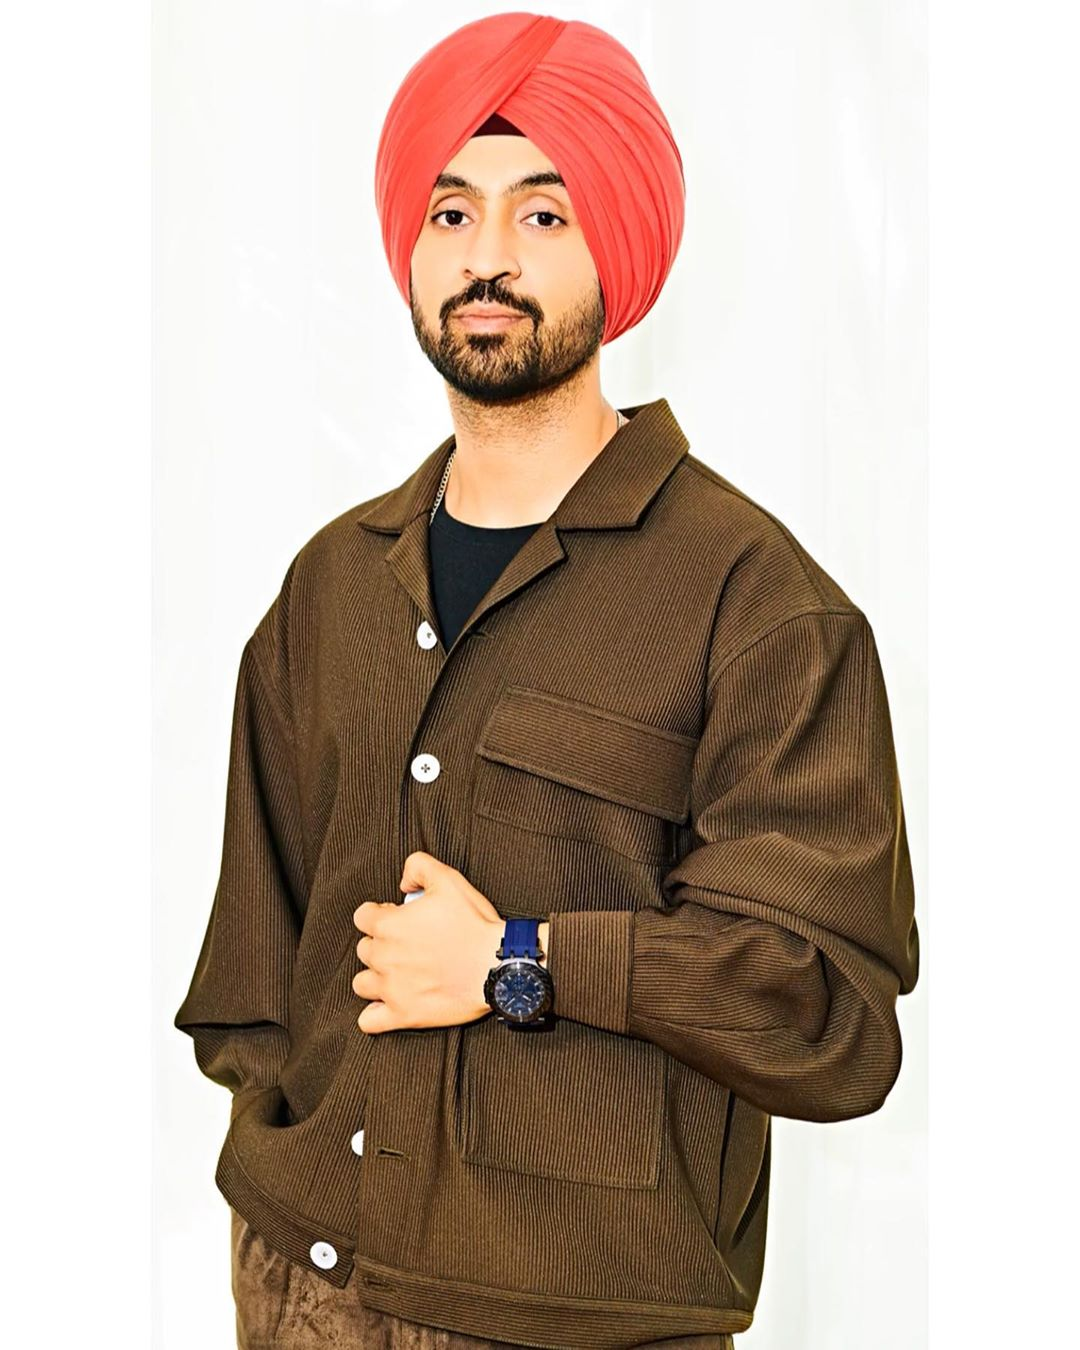 Diljit dosanjh wallpaper 4k